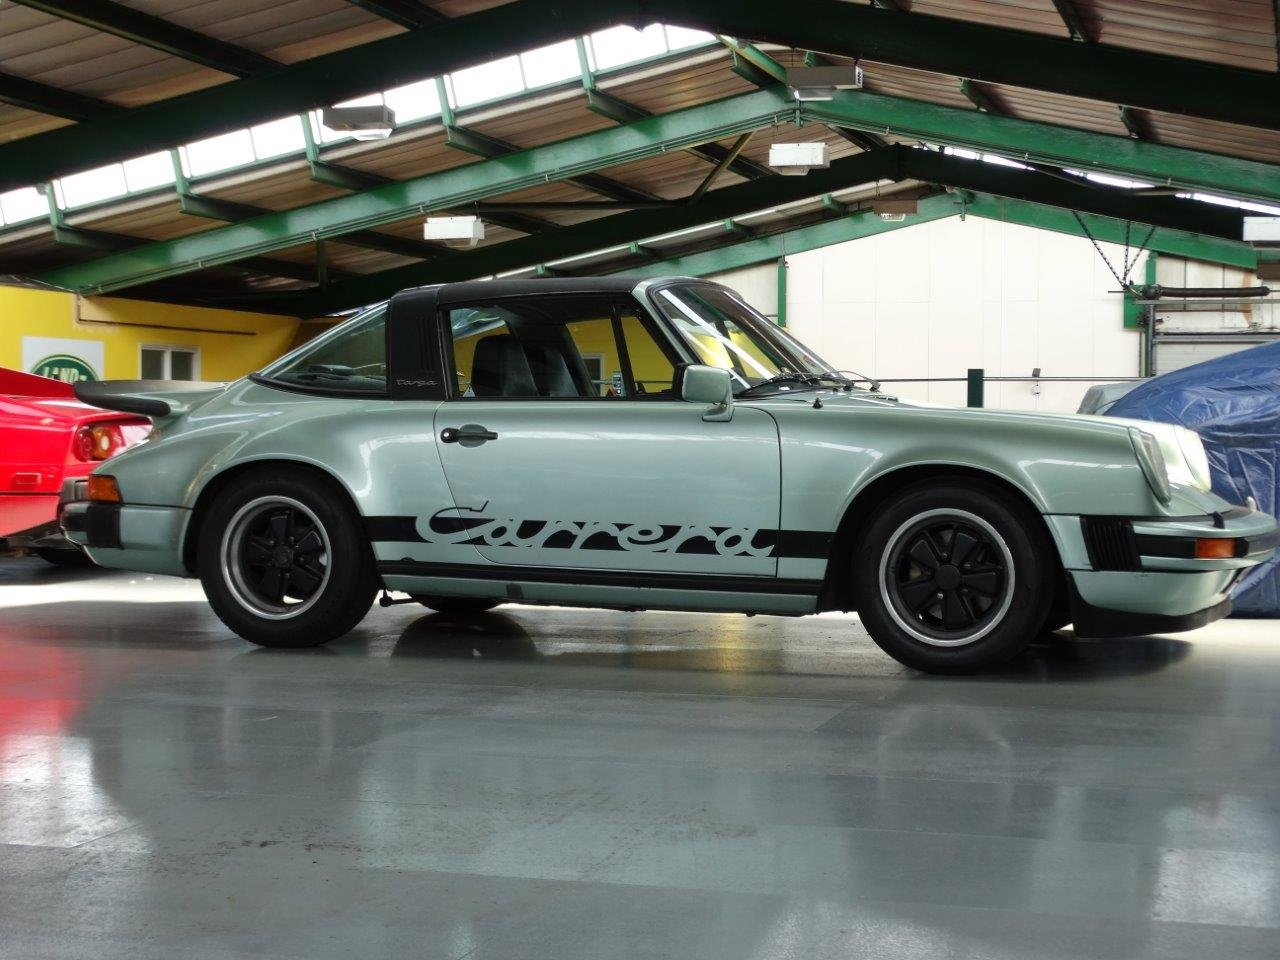 1976 RHD, Carrera 3.0 UK Sport For Sale (picture 1 of 6)